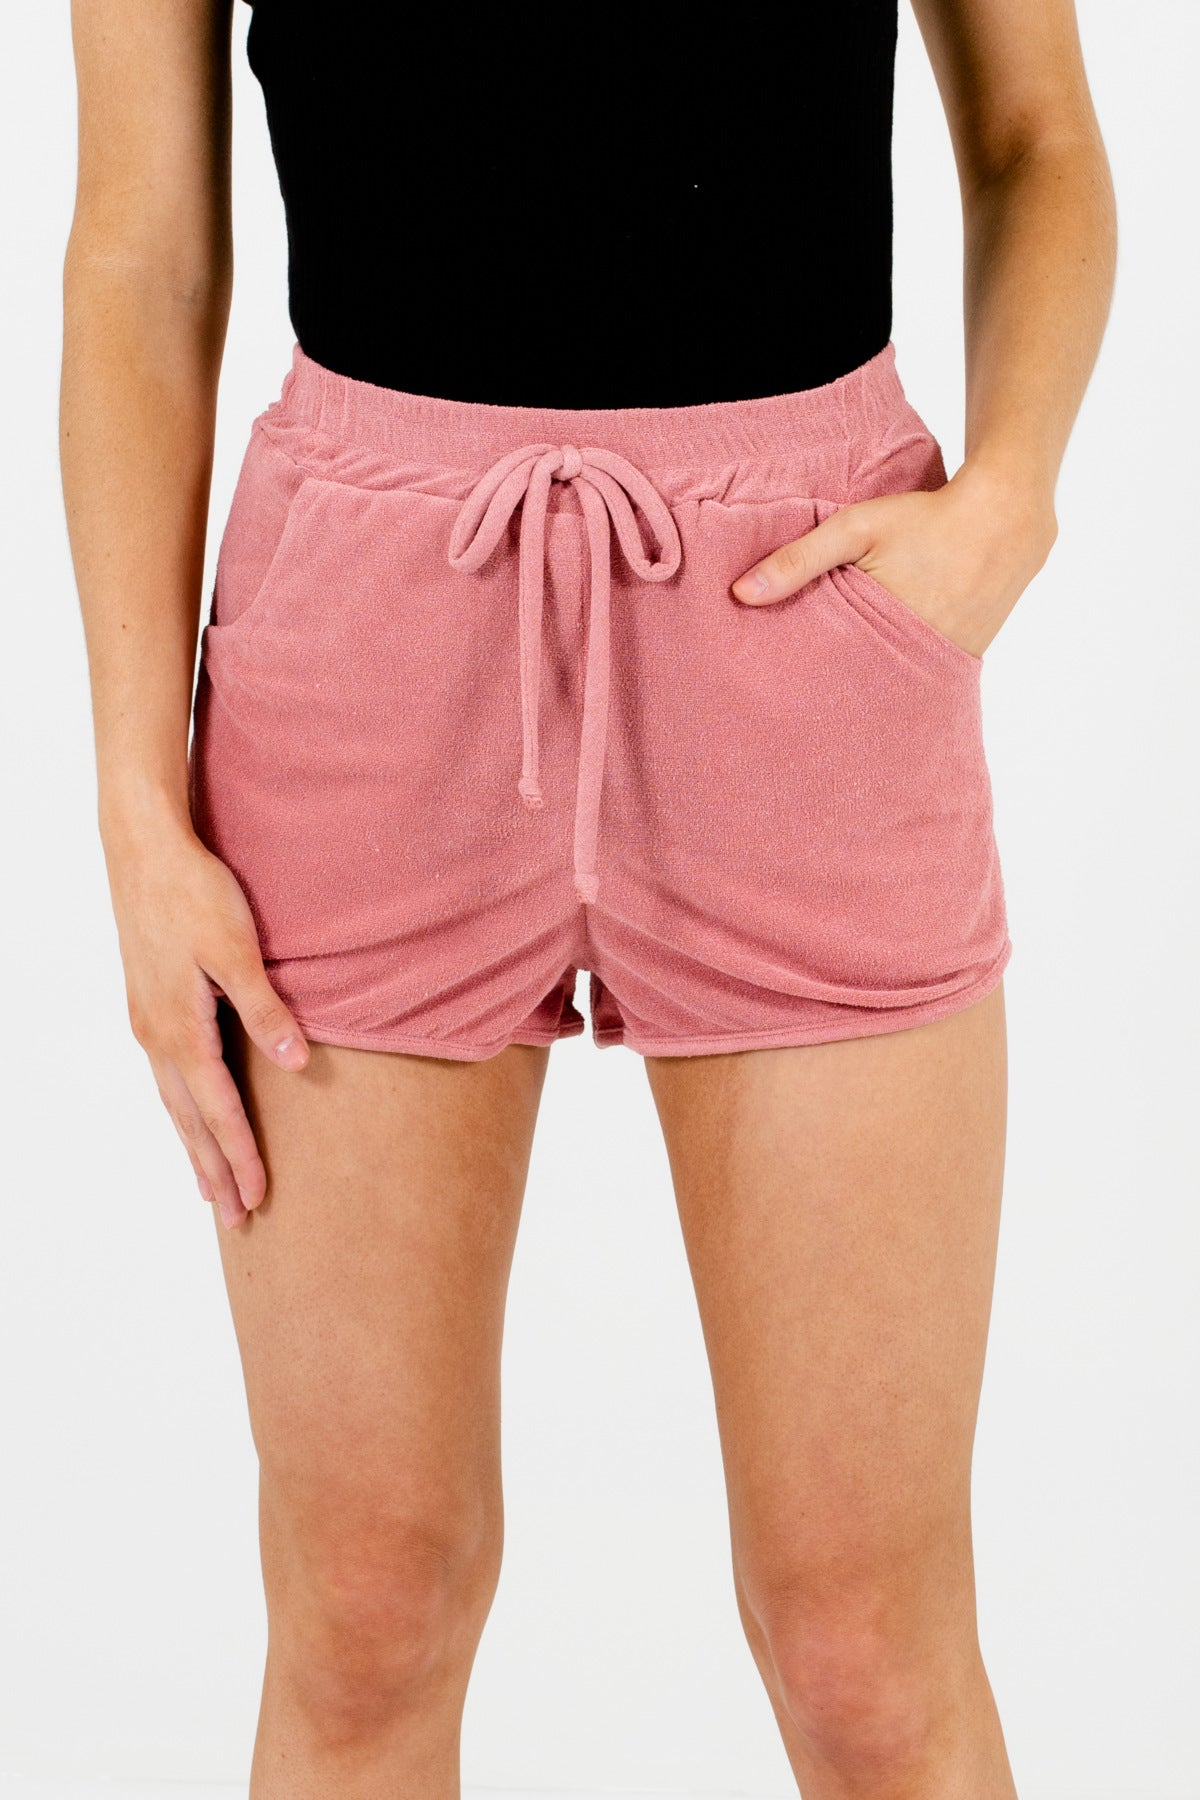 Pink Boutique Loungewear Pajama Shorts with Pockets and Elastic Waist